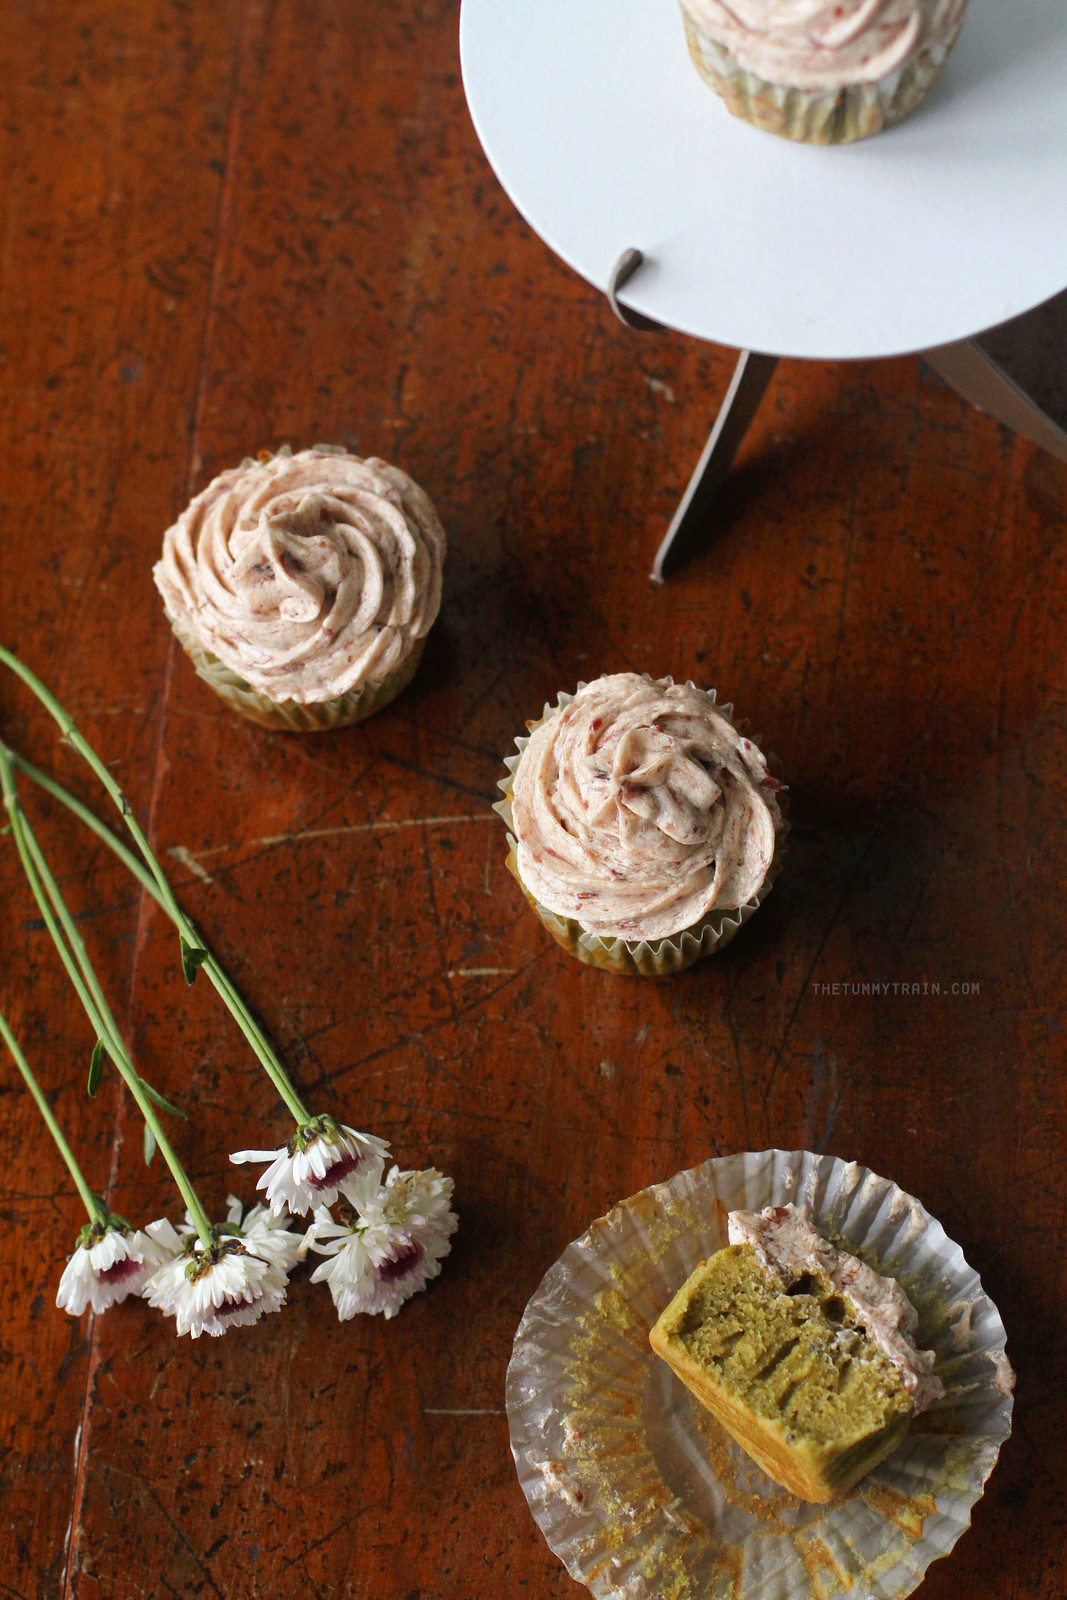 26745535525 693b6eea88 h - These Matcha Cupcakes with Red Bean Frosting sum up my sweet love [VIDEO]